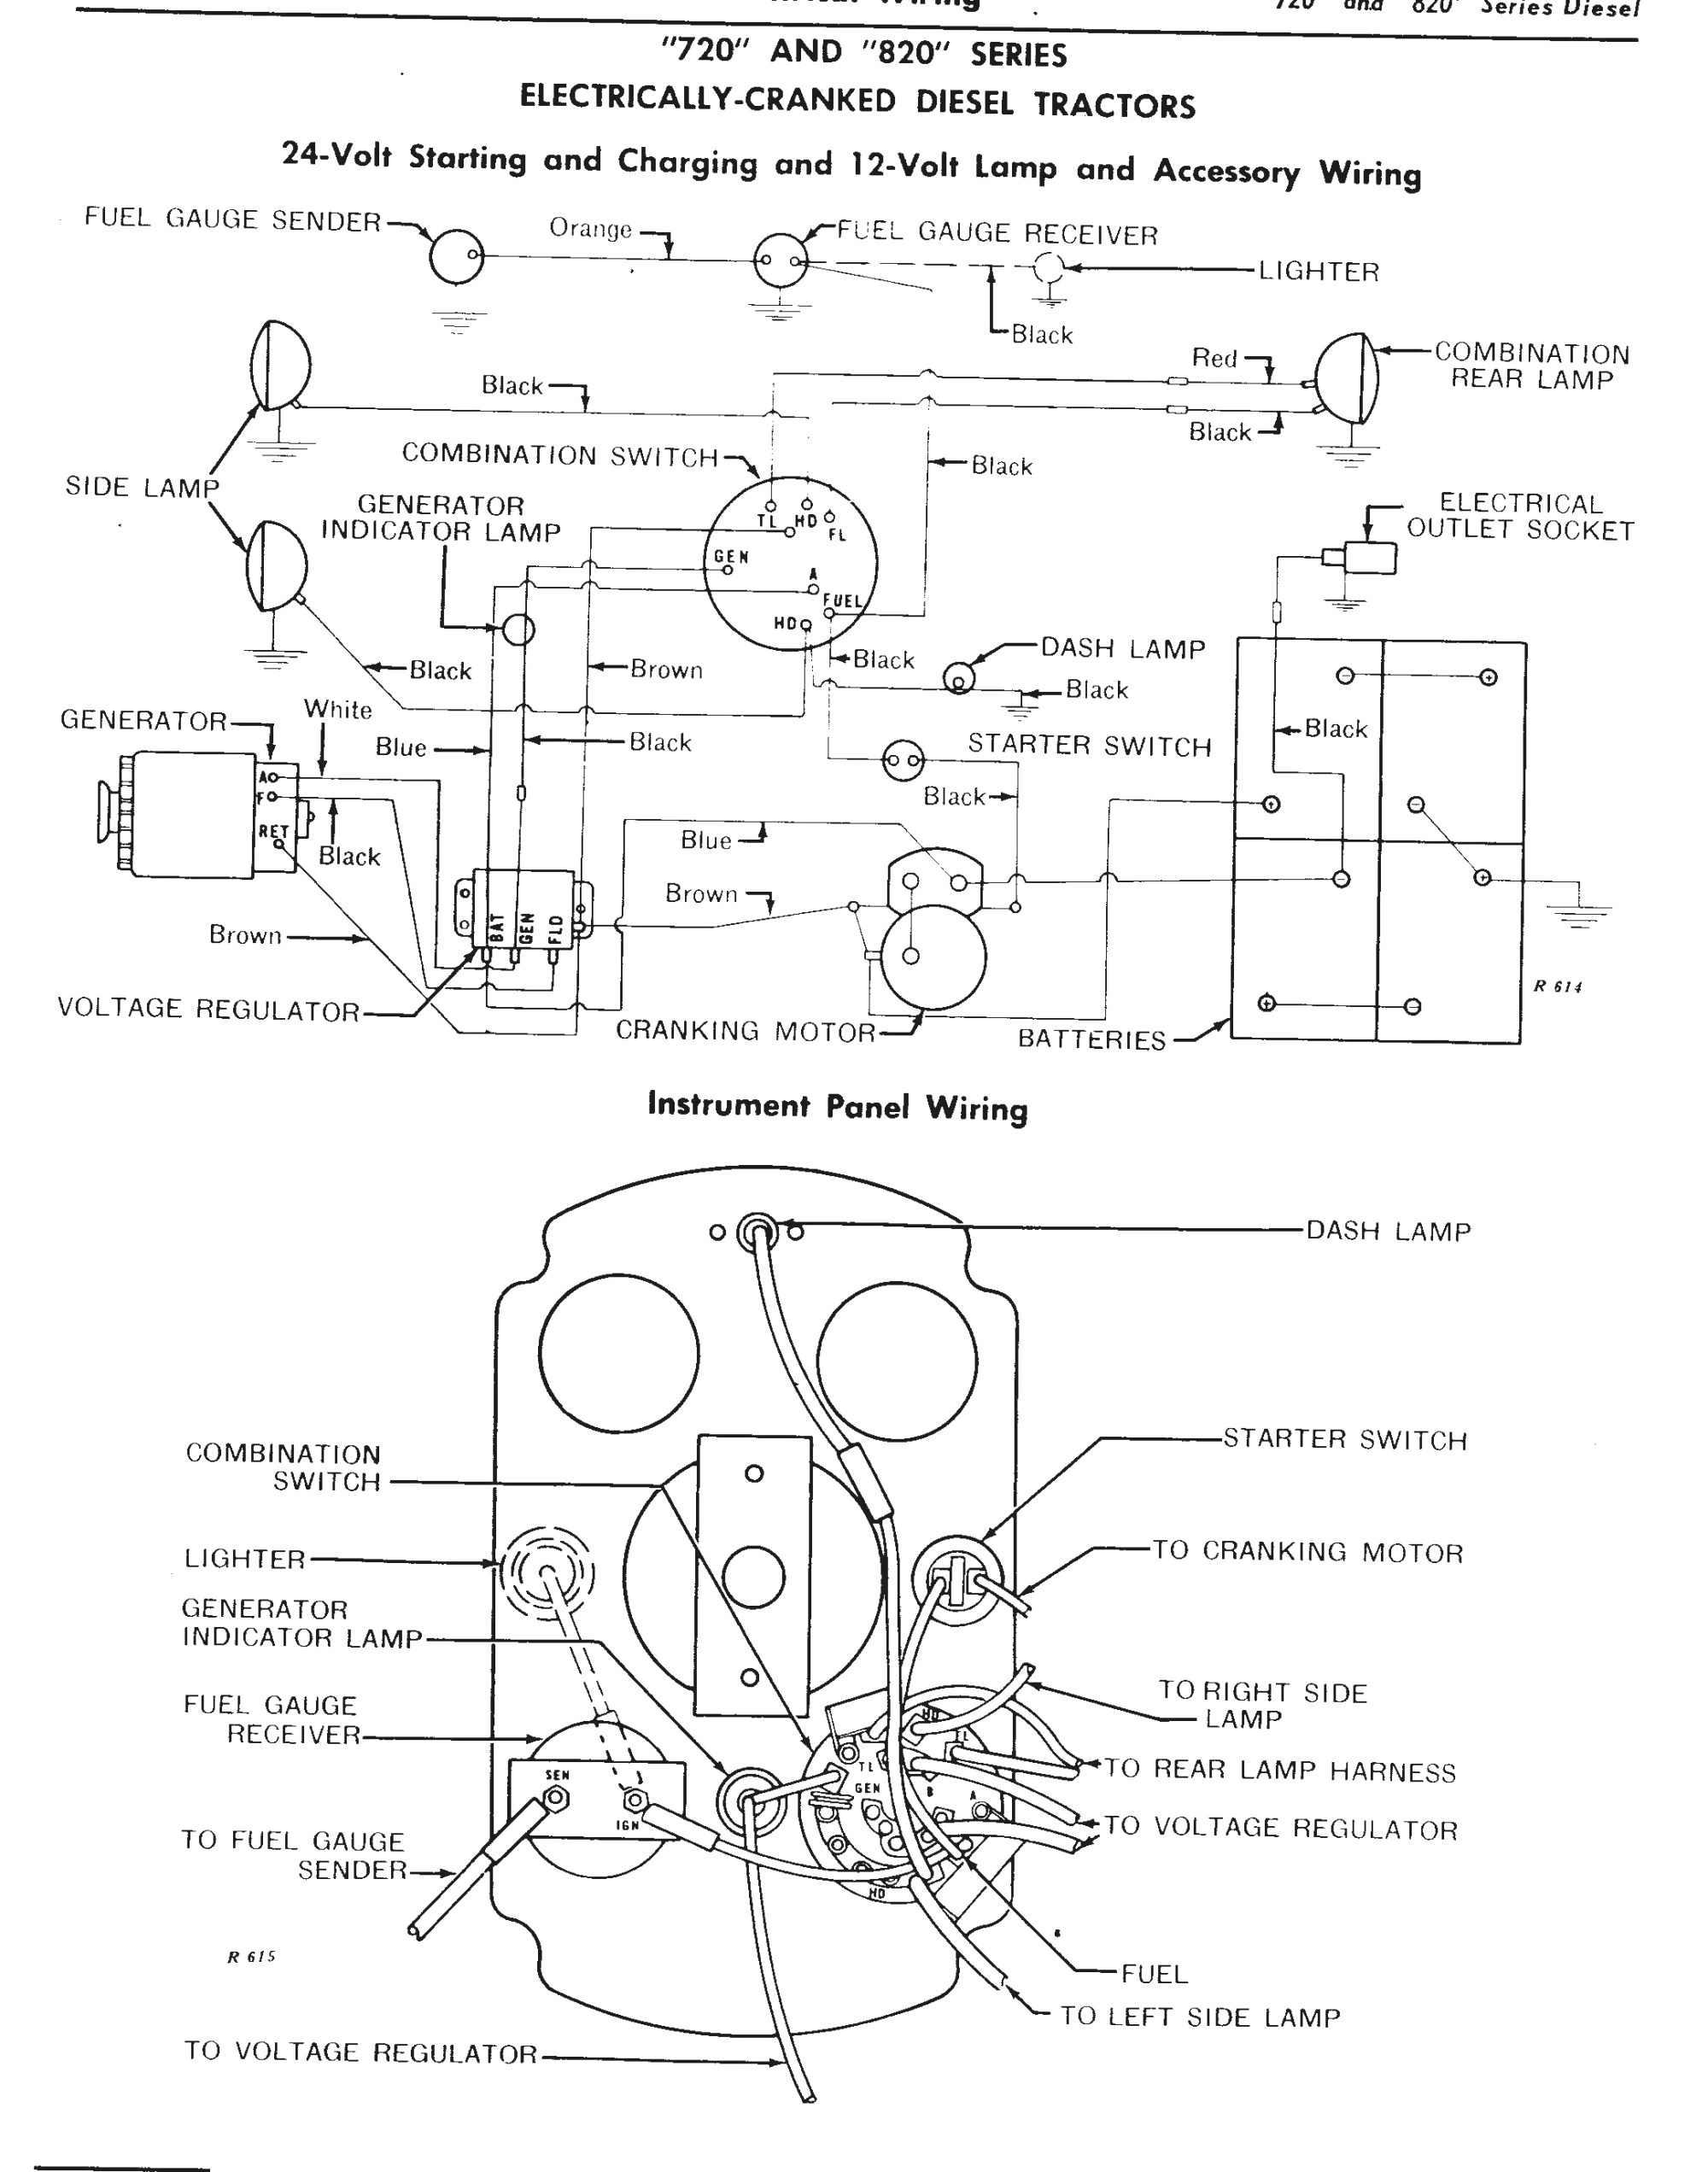 hight resolution of john deere positive ground wiring diagram wiring library john deere 350 wiring diagram john deere 6 volt wiring diagram